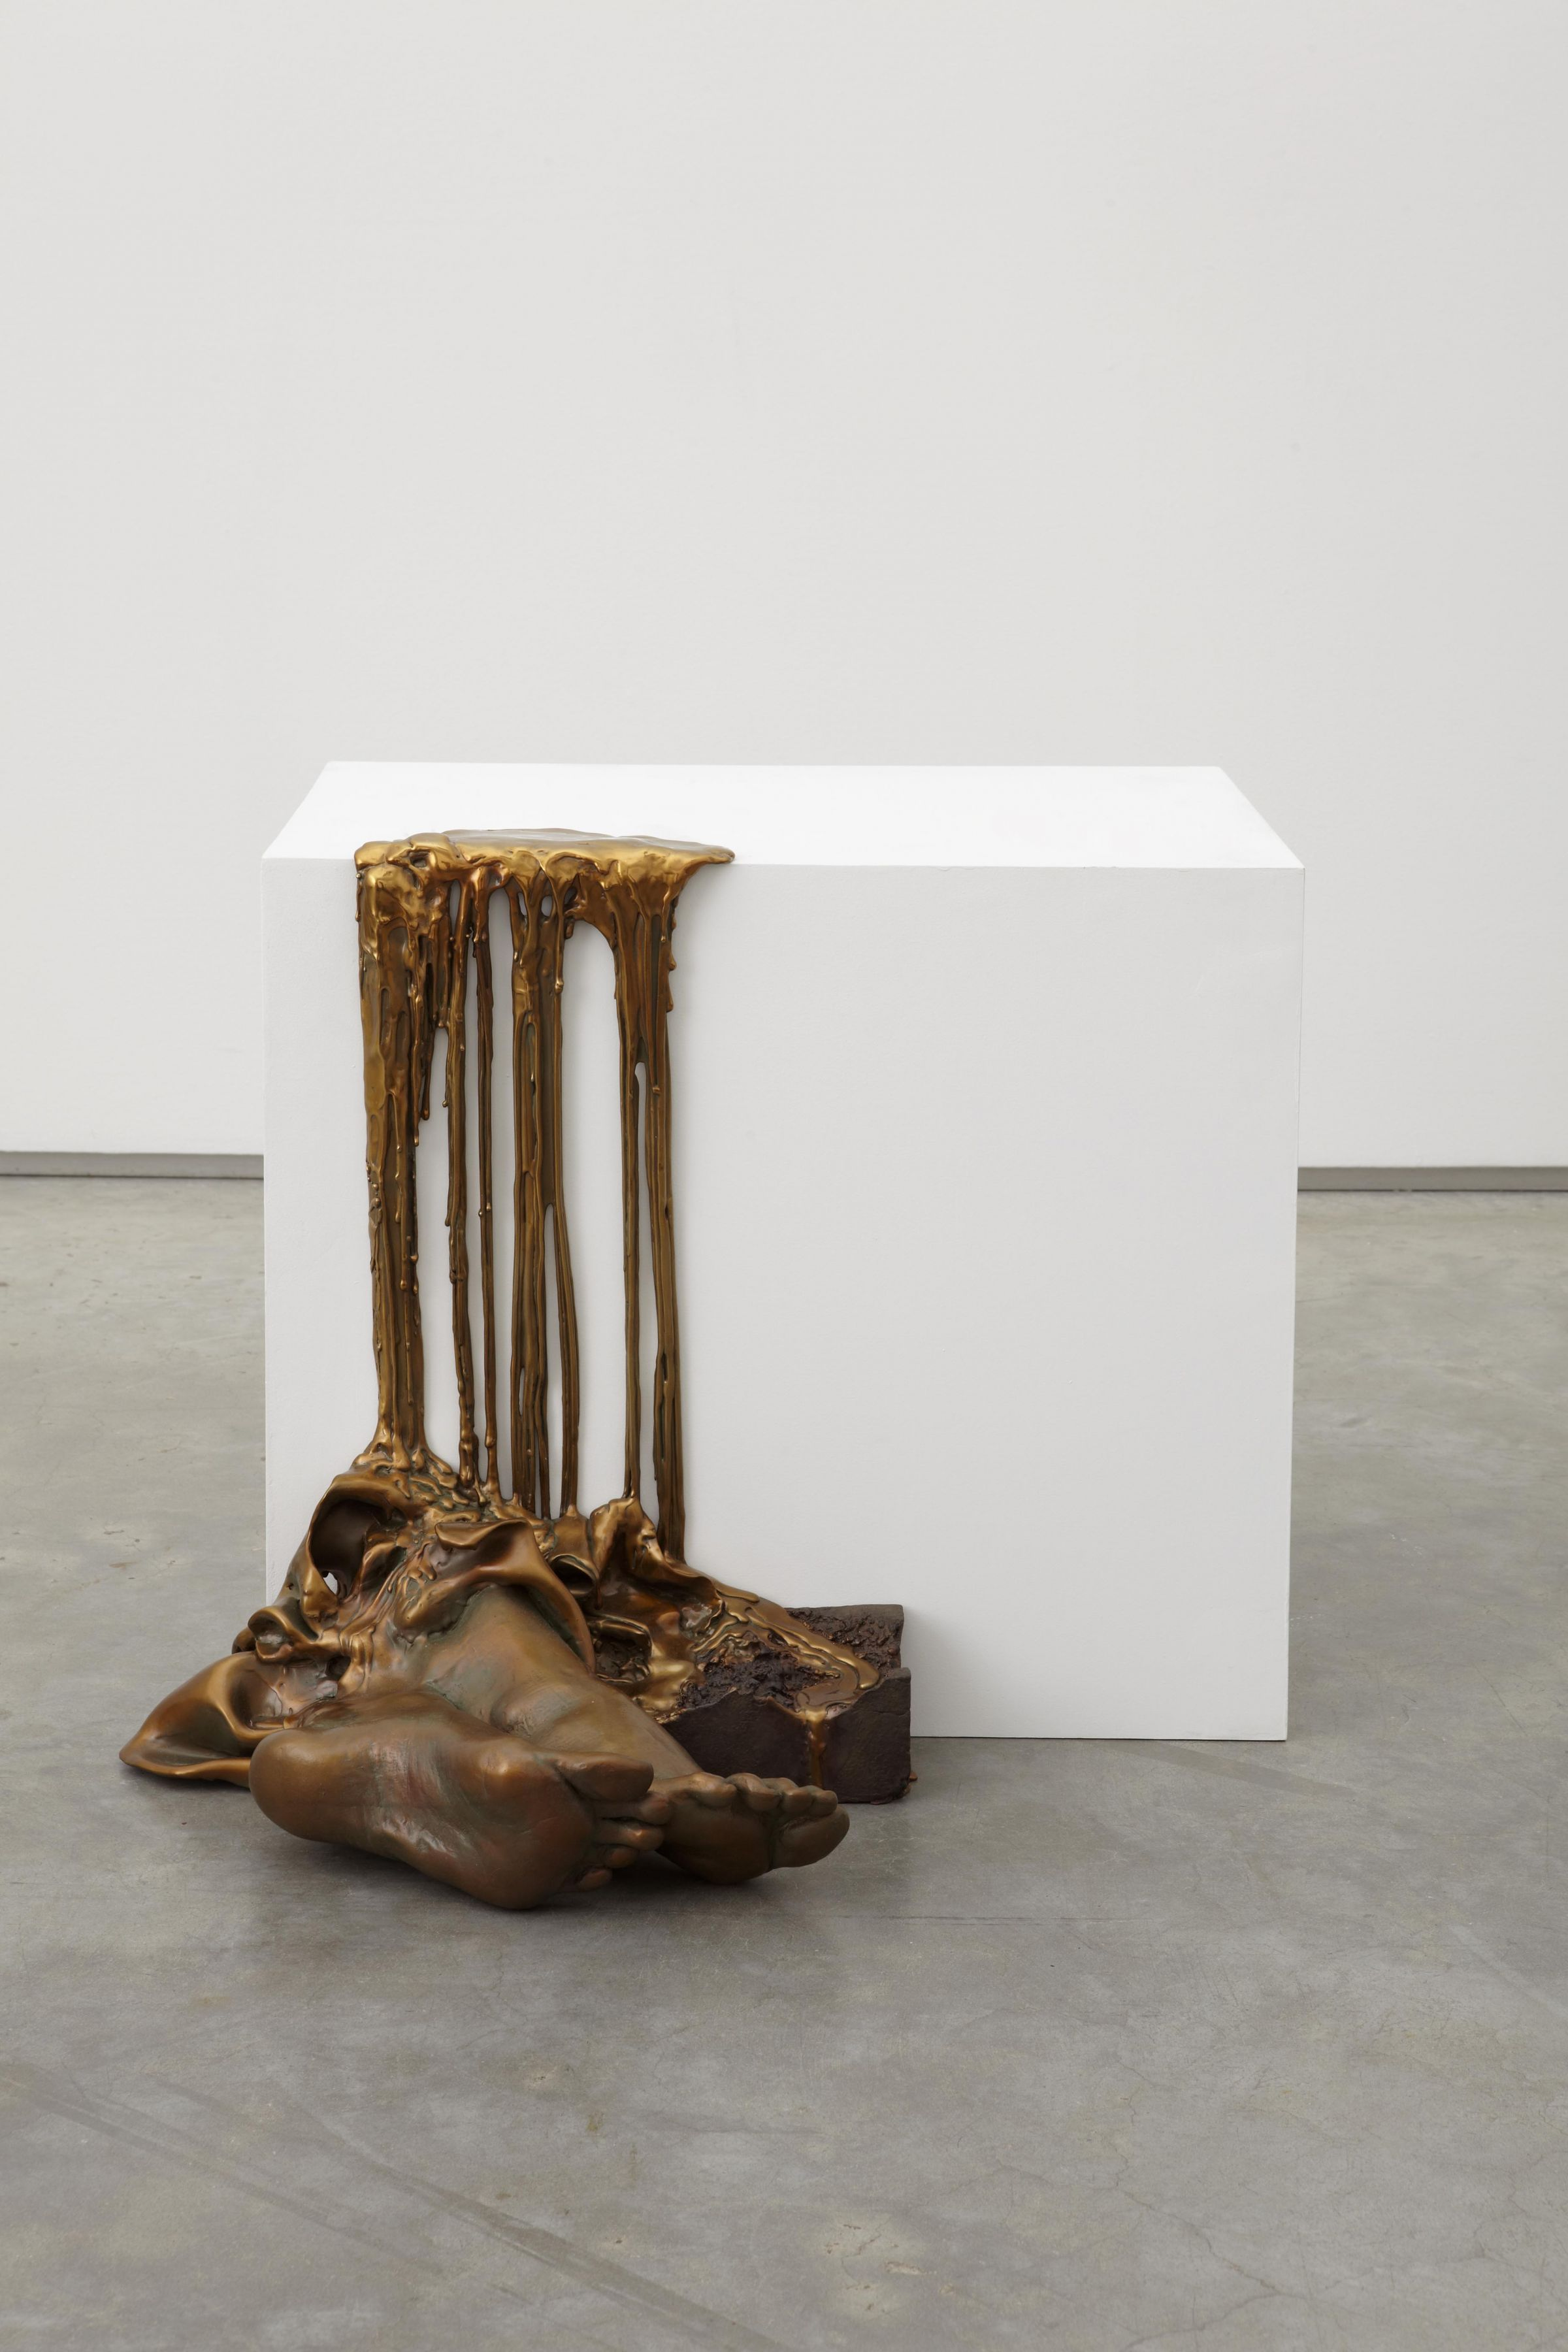 a bronze work of art that is dripping off a pedestal by Diana Al-Hadid